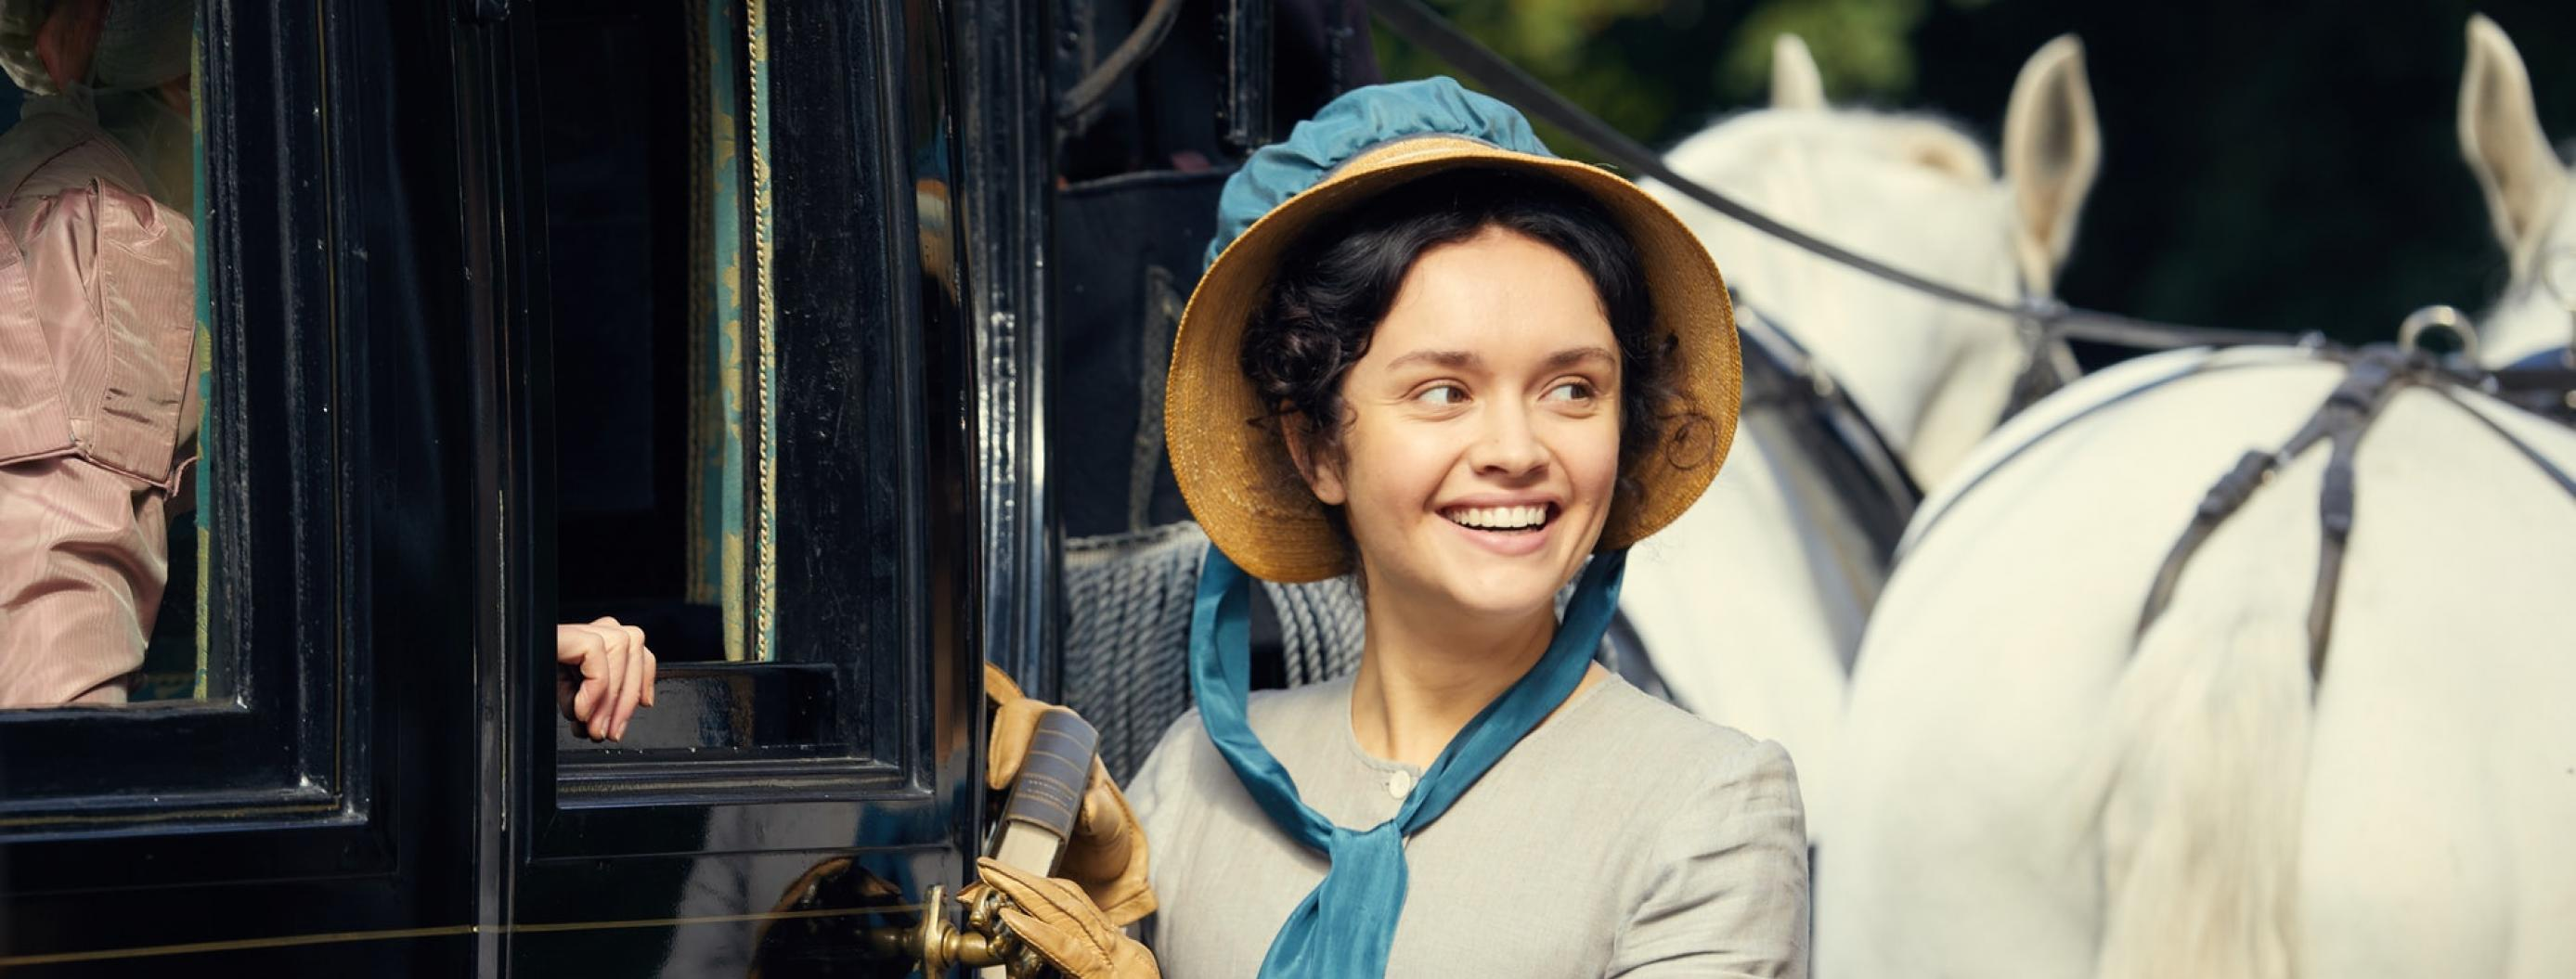 Is Vanity Fair's Becky Sharp Based on a Real Person?